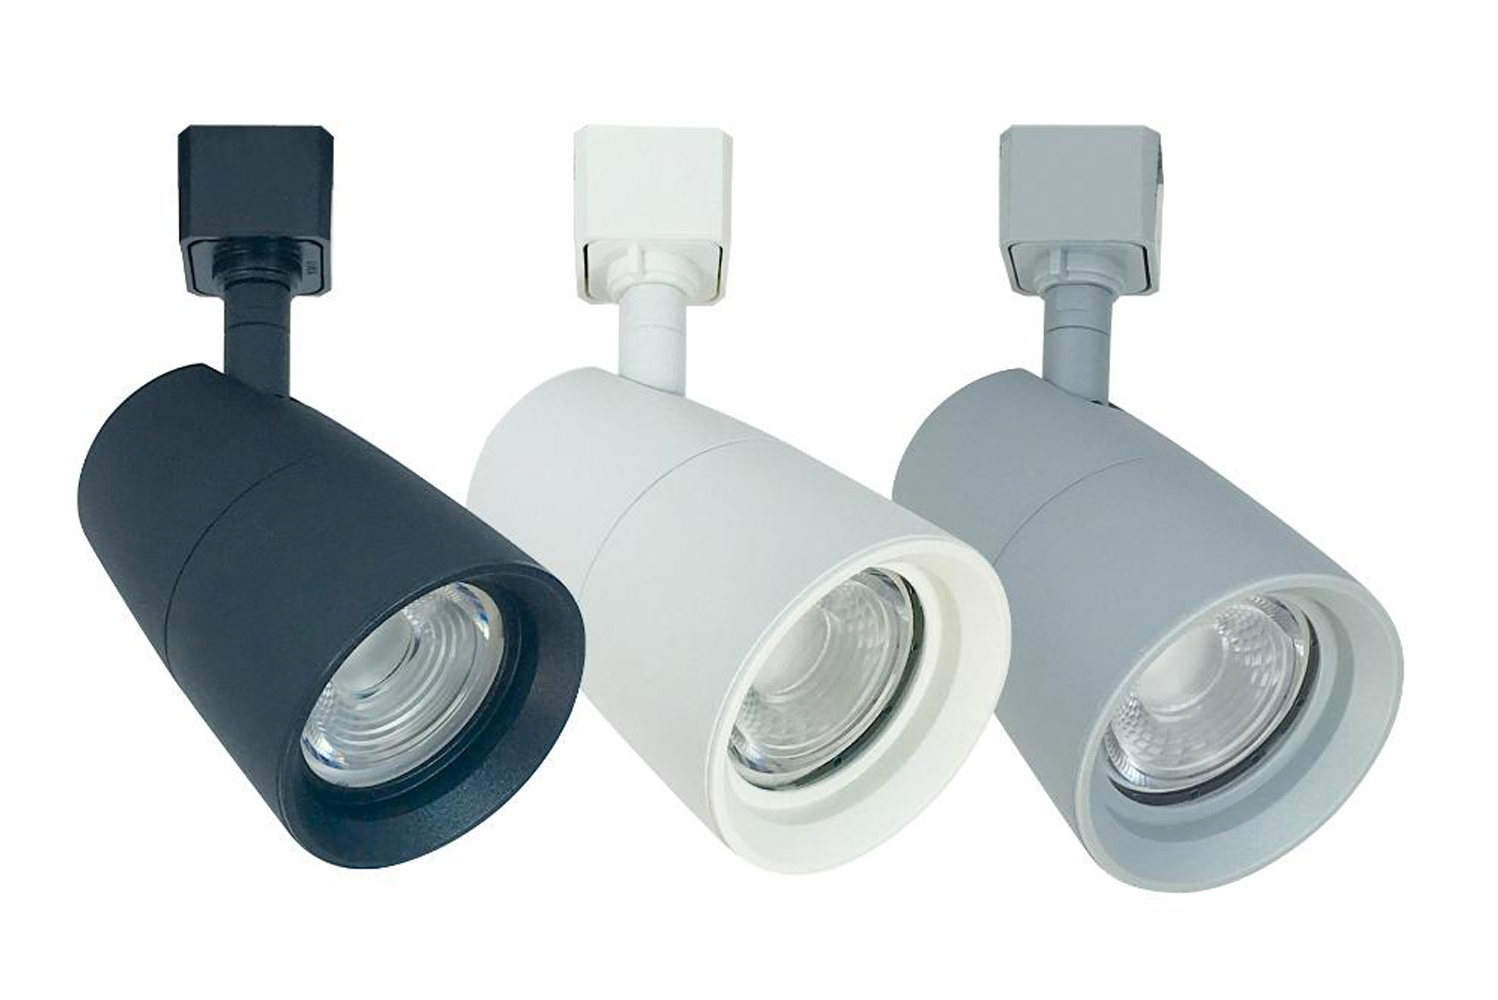 The MAC produces up to 700 lumens (10W) and measures 3 ½-inch long x 2 ¼-inch wide x 5-inch tall.